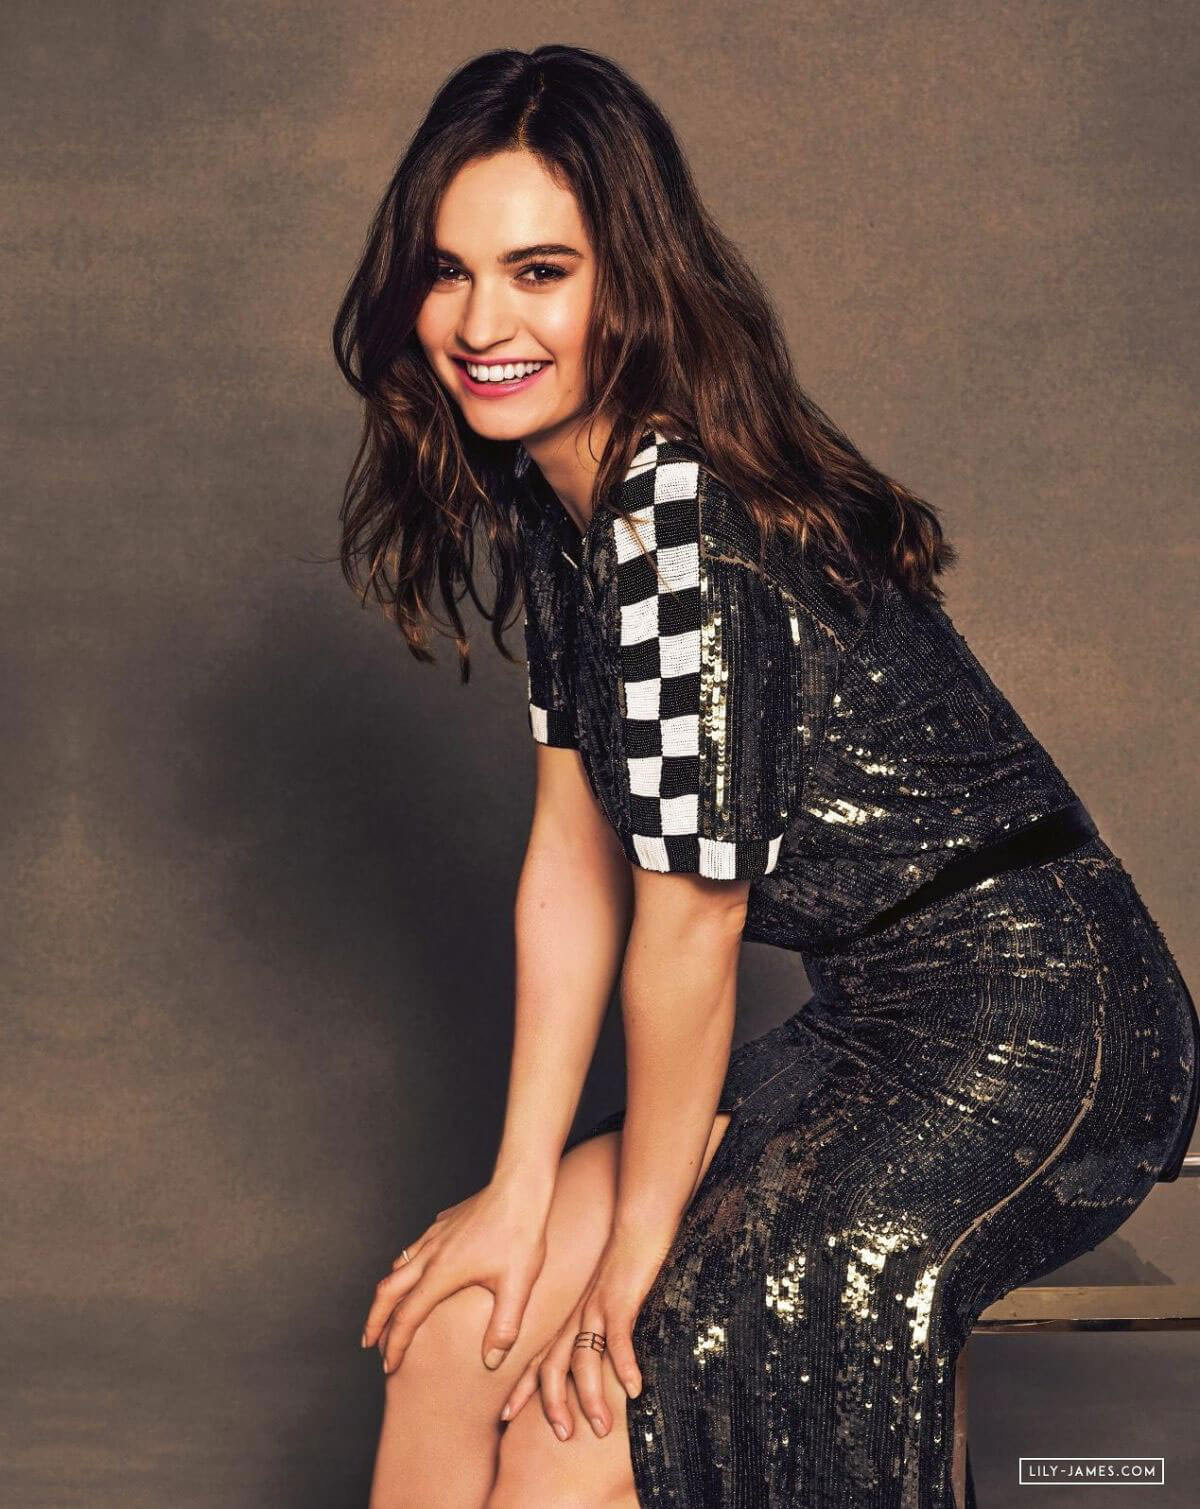 Lily James Poses For Baby Driver 2017 Promos Photos 178976 Celebskart